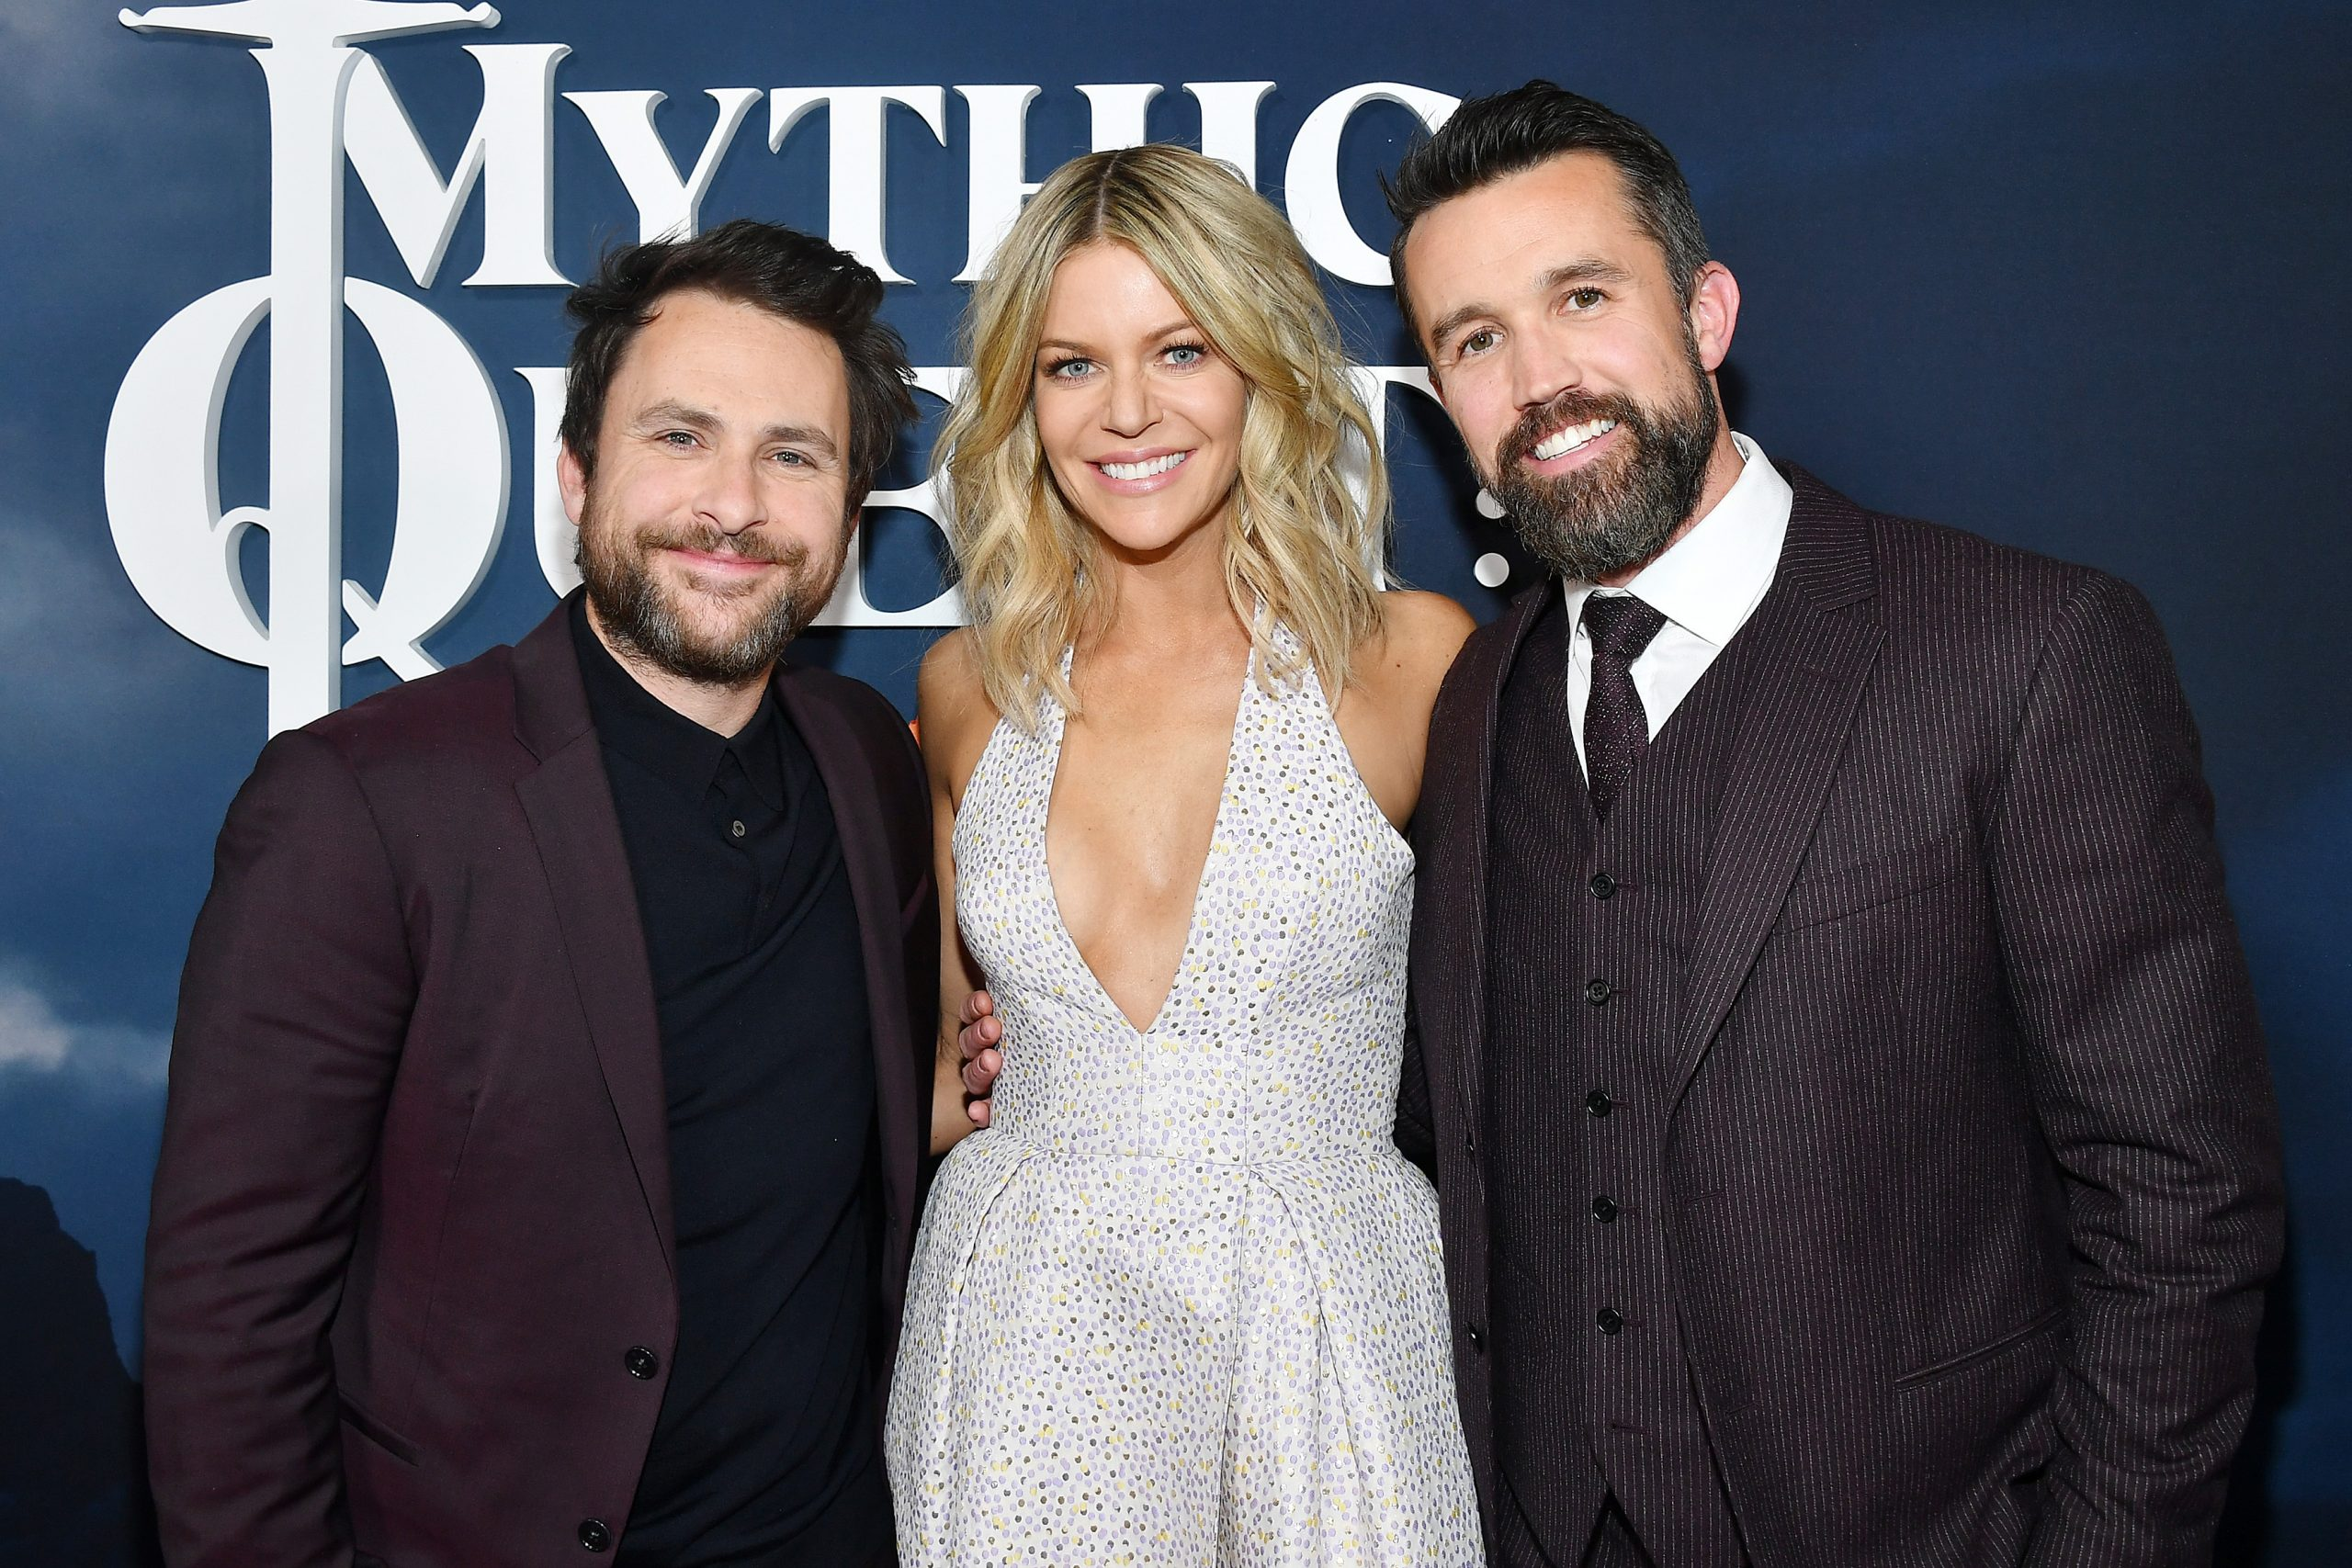 Charlie Day, Kaitlin Olson. and Rob McElhenney of It's Always Sunny in Philadelphia